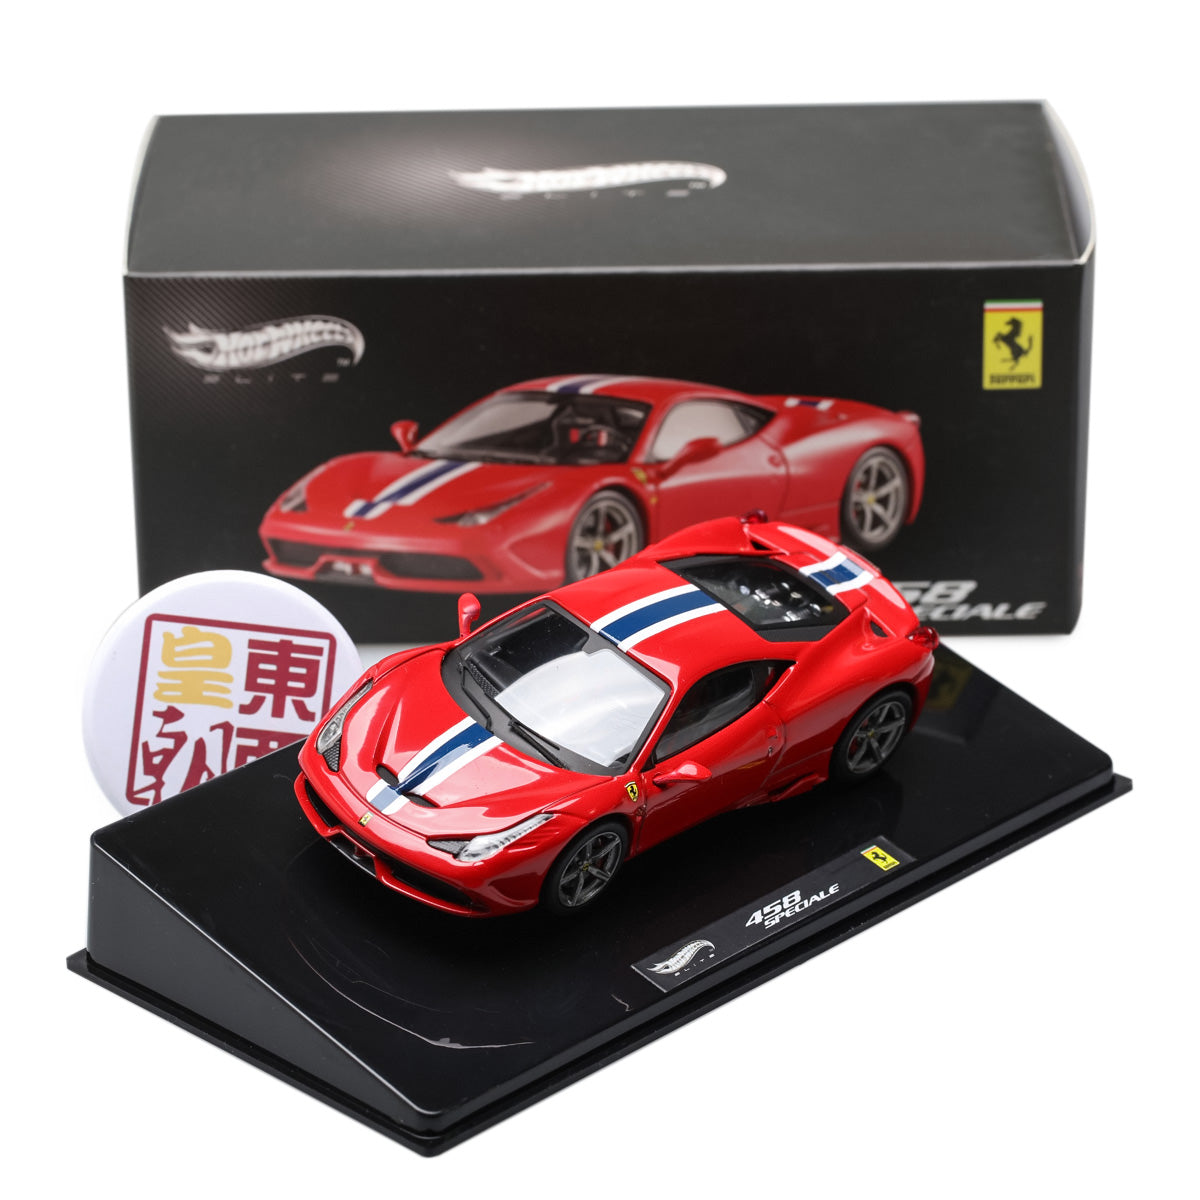 Hot Wheels Elite 1:43 Ferrari 458 Italia Special 2013 Red Diecast Model Car BLY45